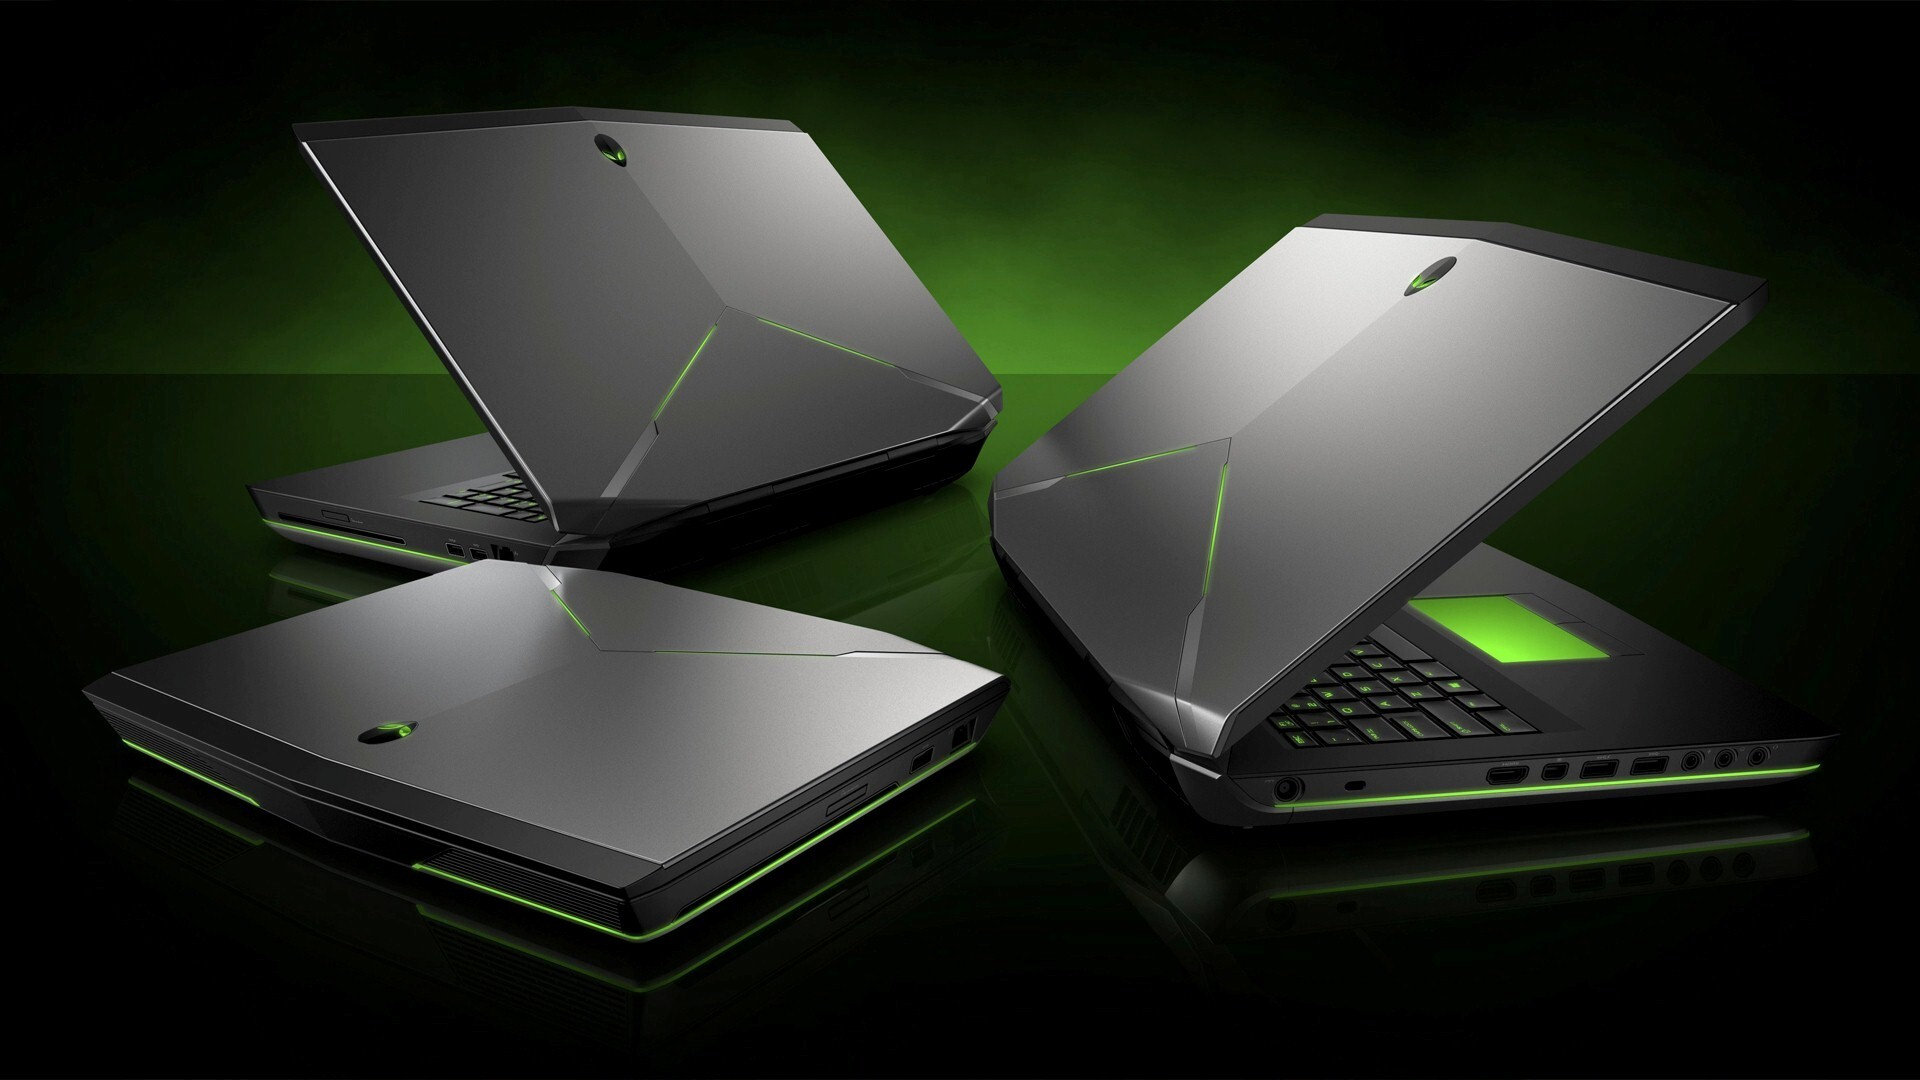 alienware hd wallpapers images pictures photos download